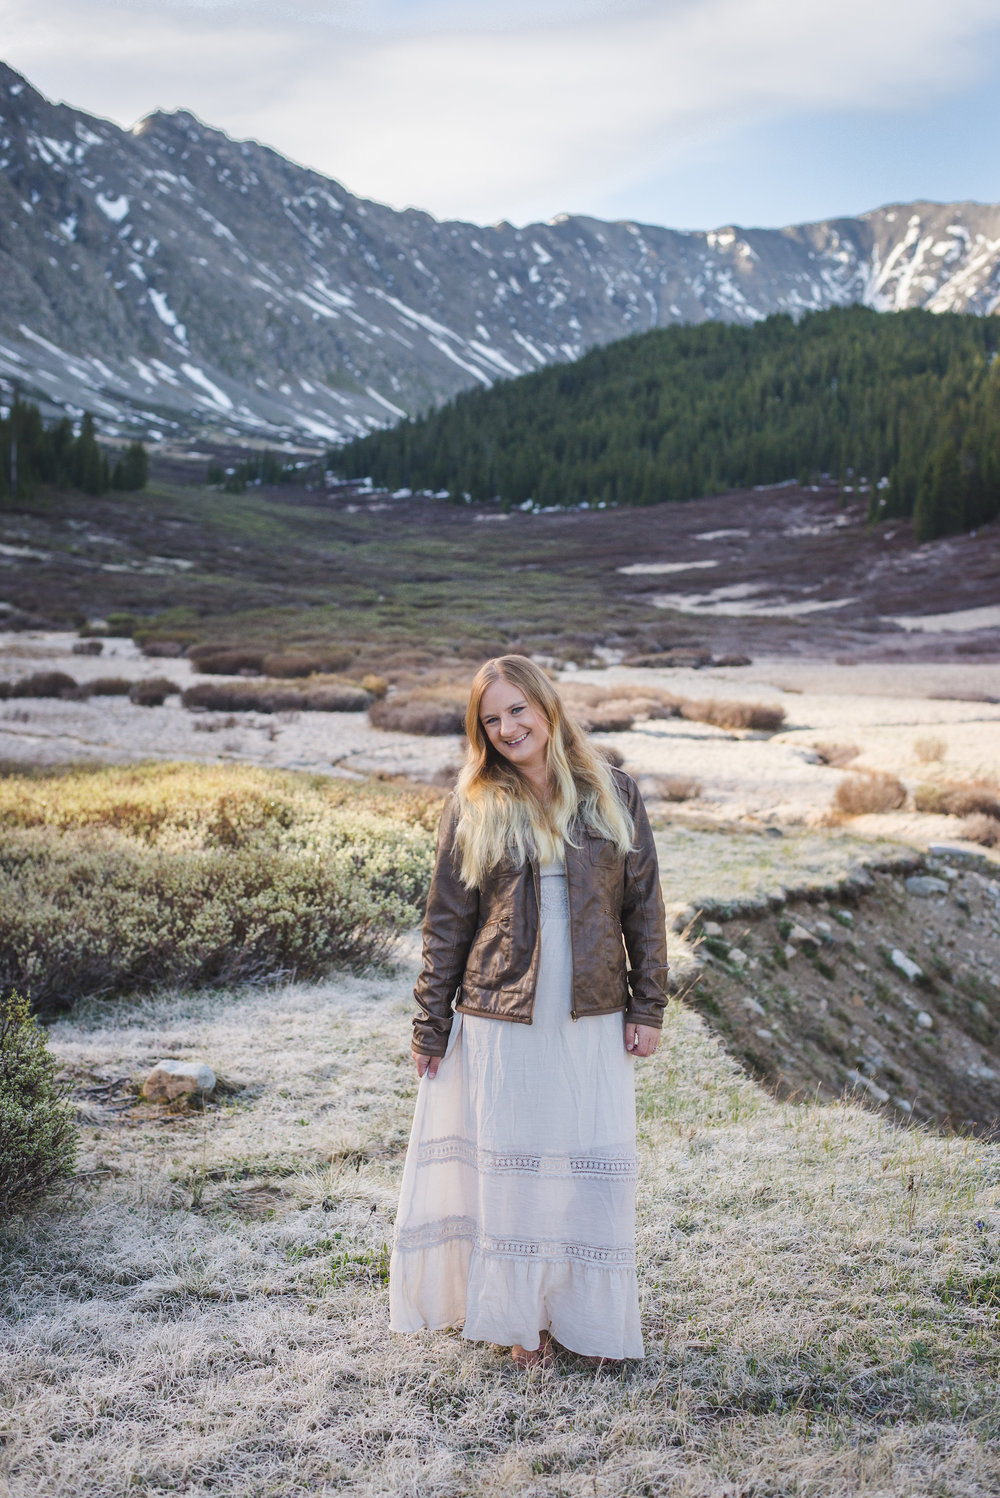 Sunrise young woman portrait session in the Colorado mountains | Flattering your Features | Keeping Composure Photography